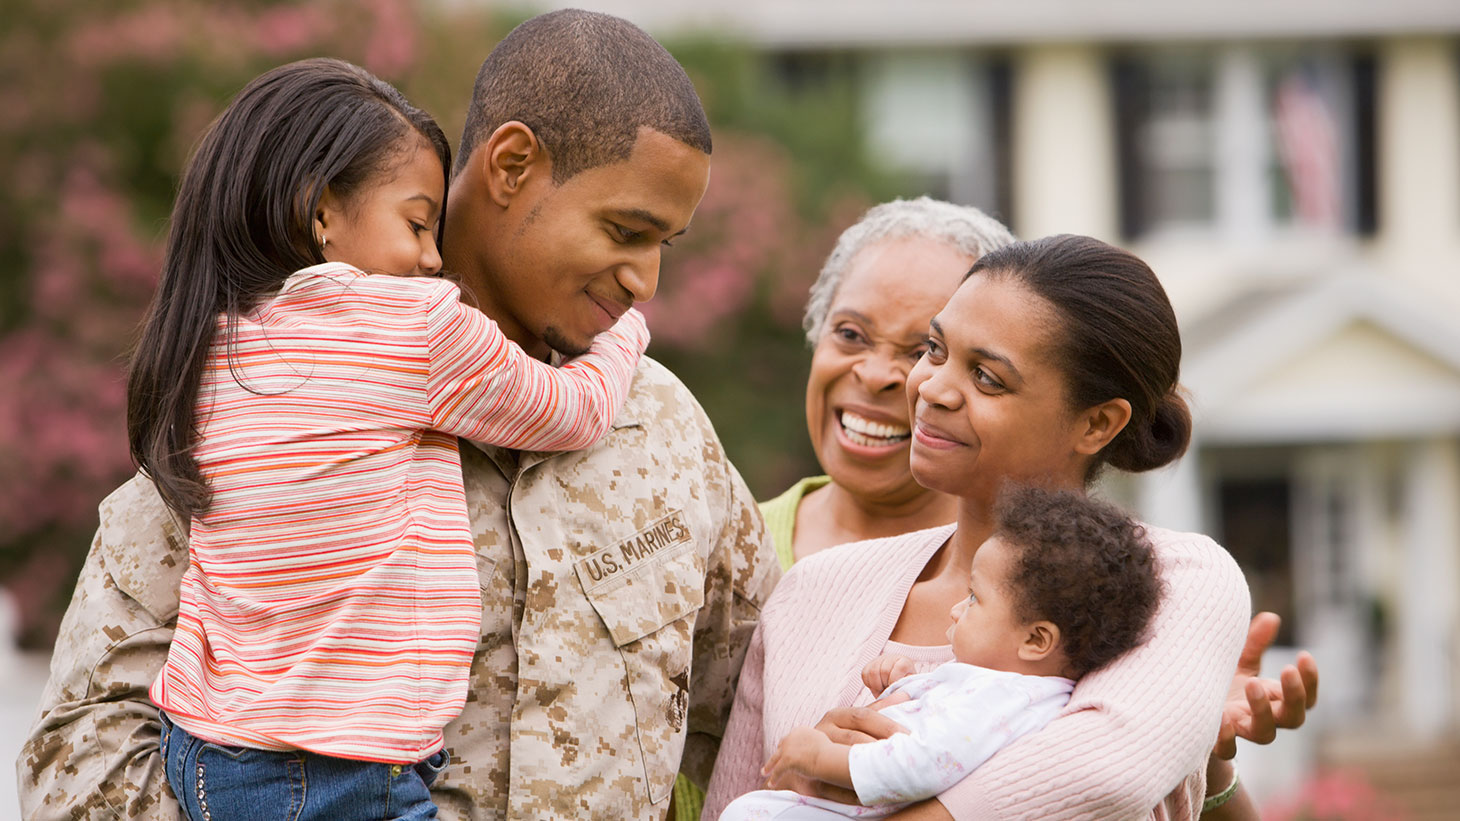 Identity Theft Protection for Military